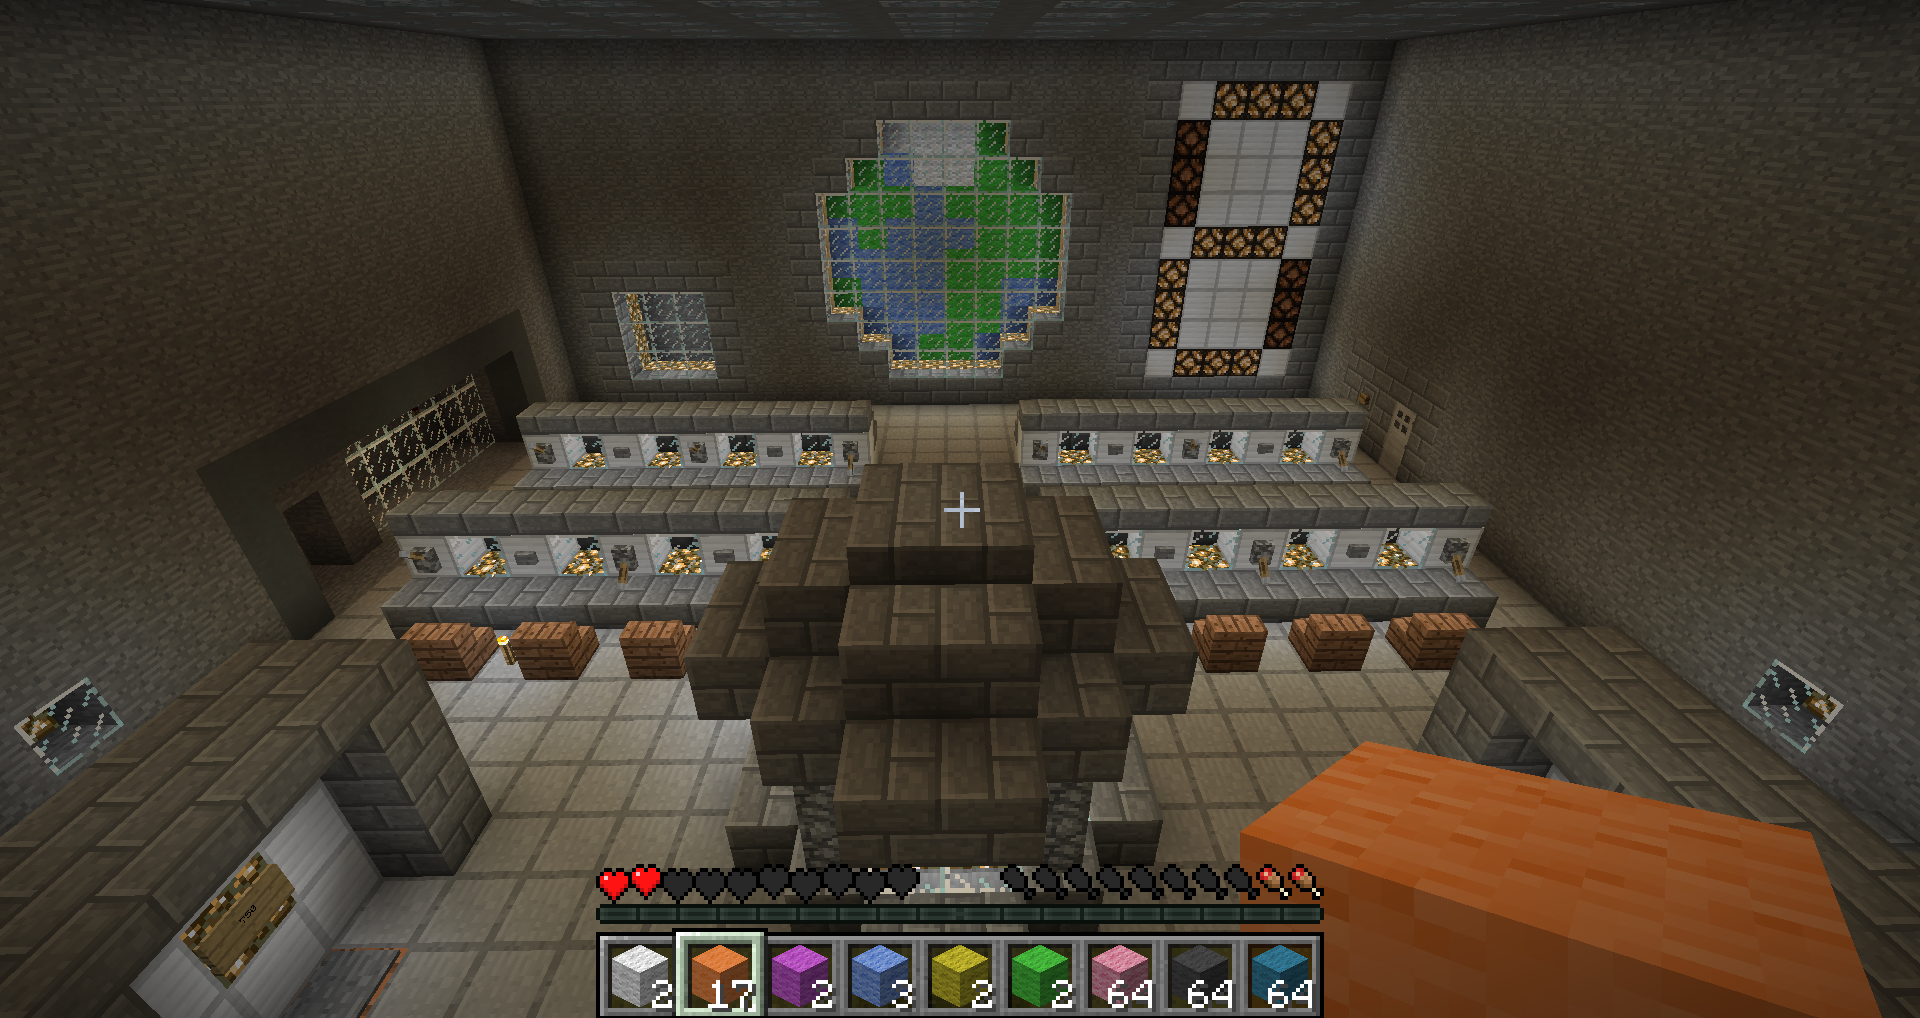 Hackaday Space: Final Transmission Minecraft Puzzles Explained